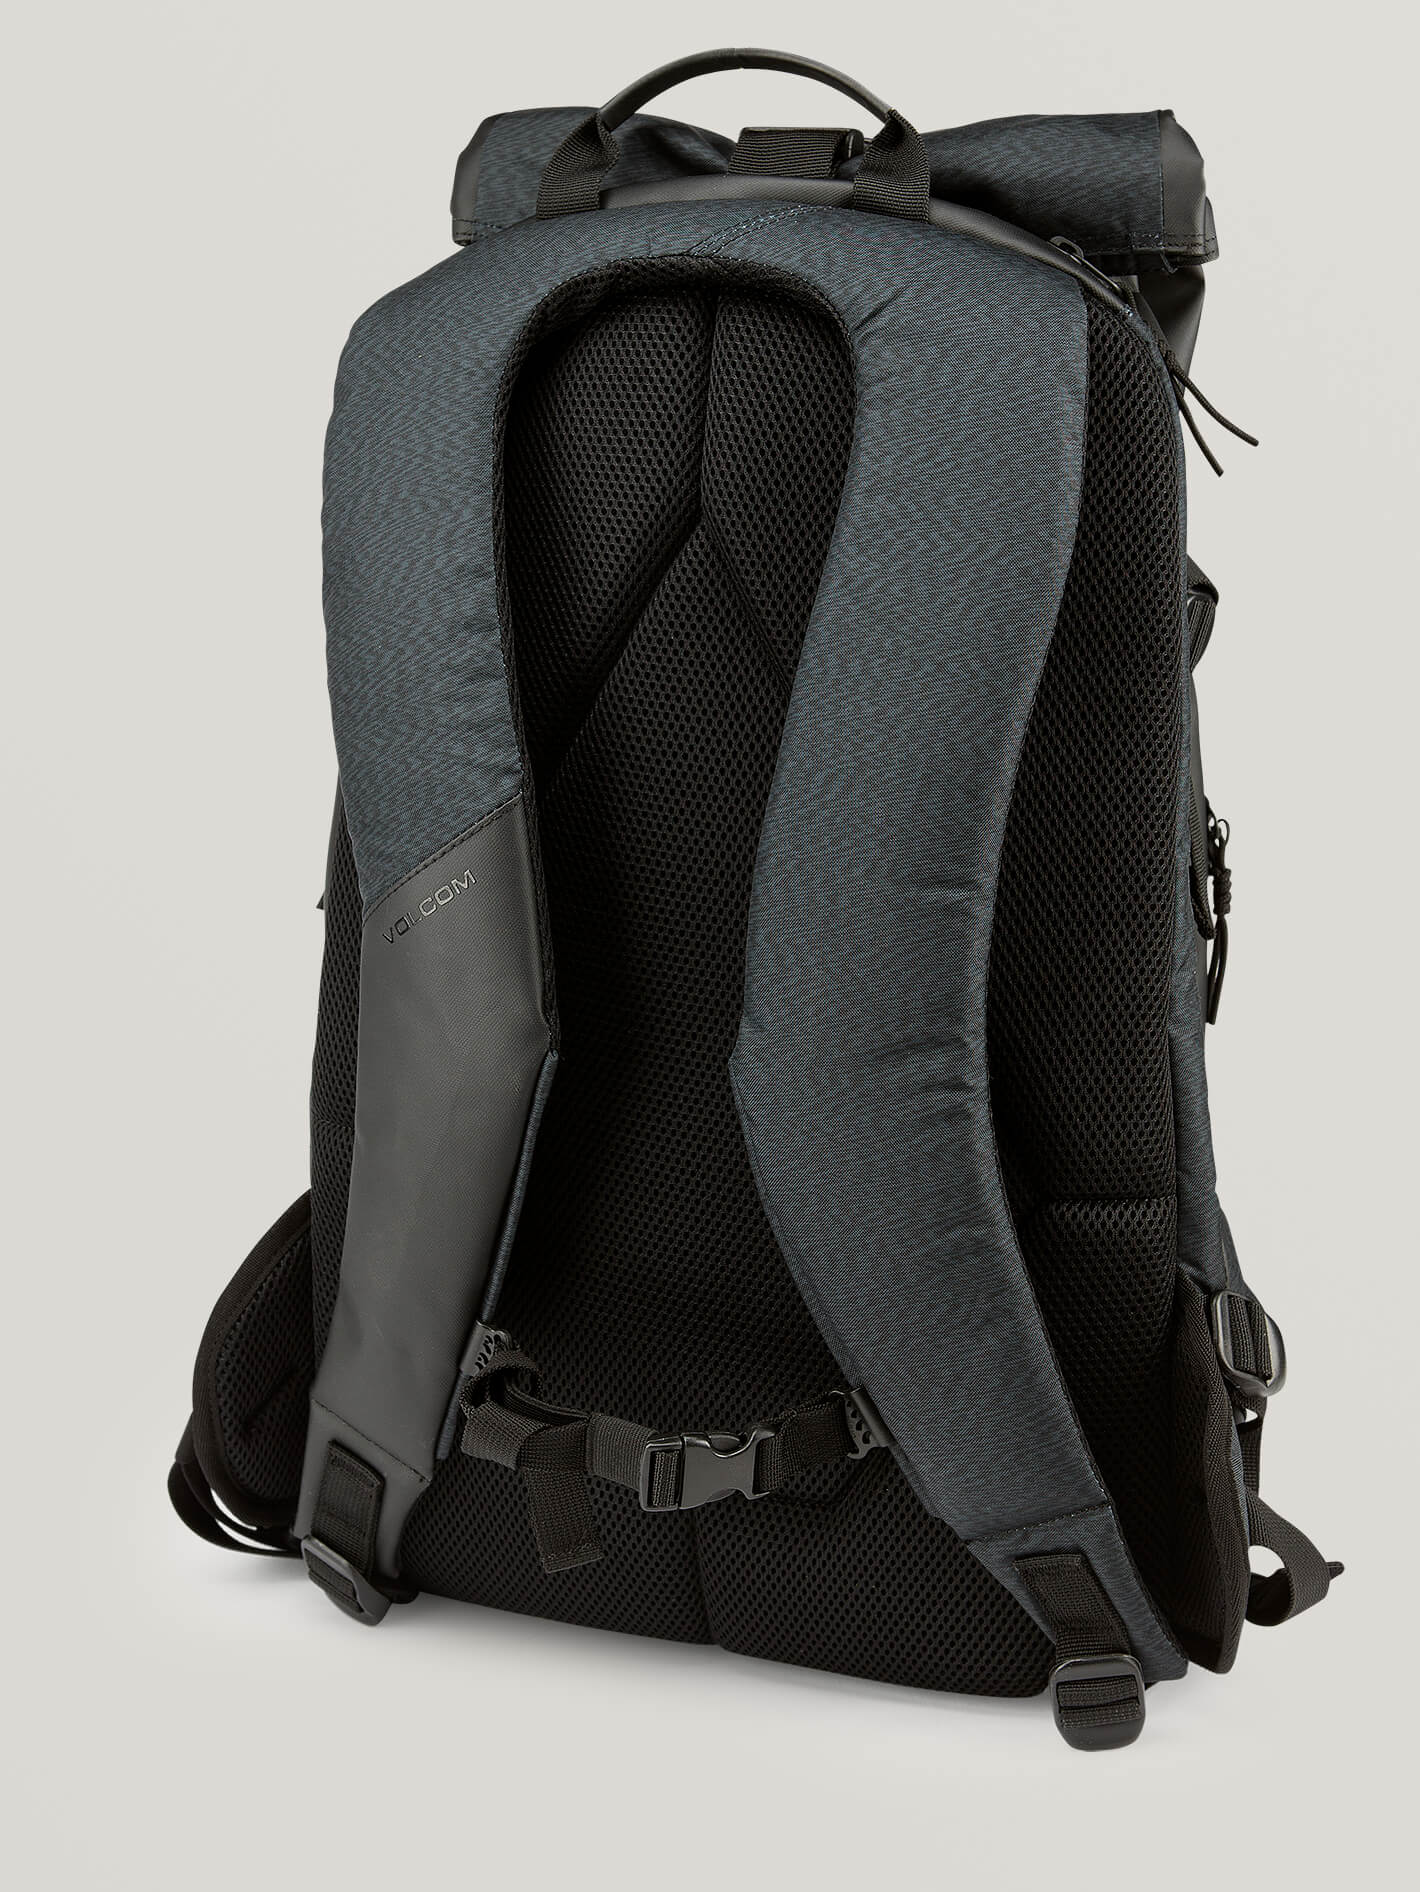 bee2827b4ac Volcom Backpacks | Men's Luggage, Travel Bags & Suitcases